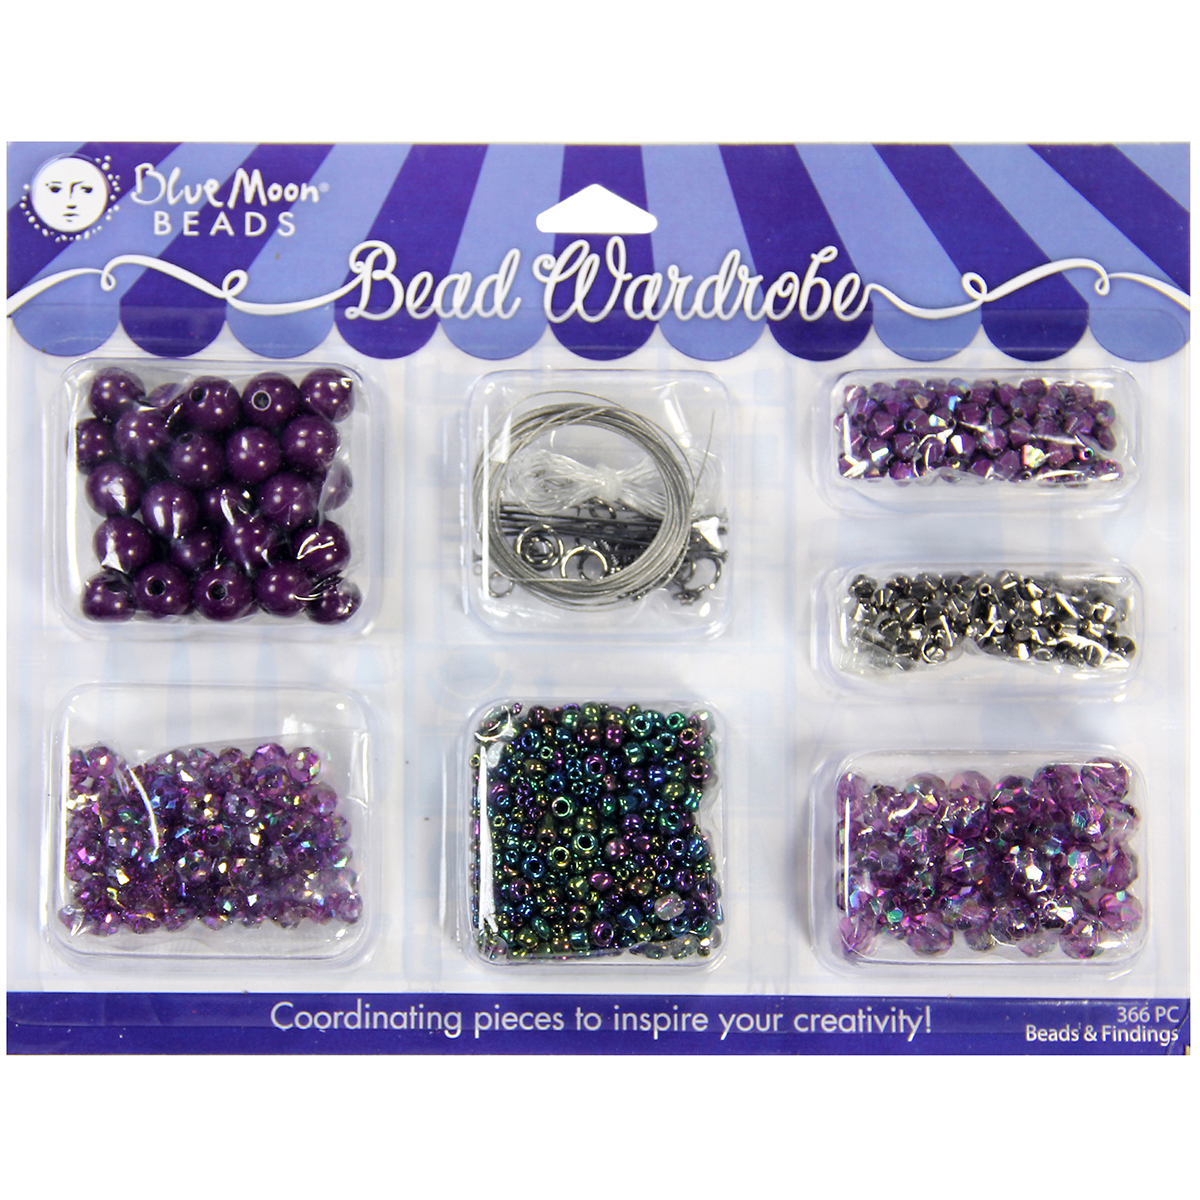 Bead Wardrobe Collection Beads